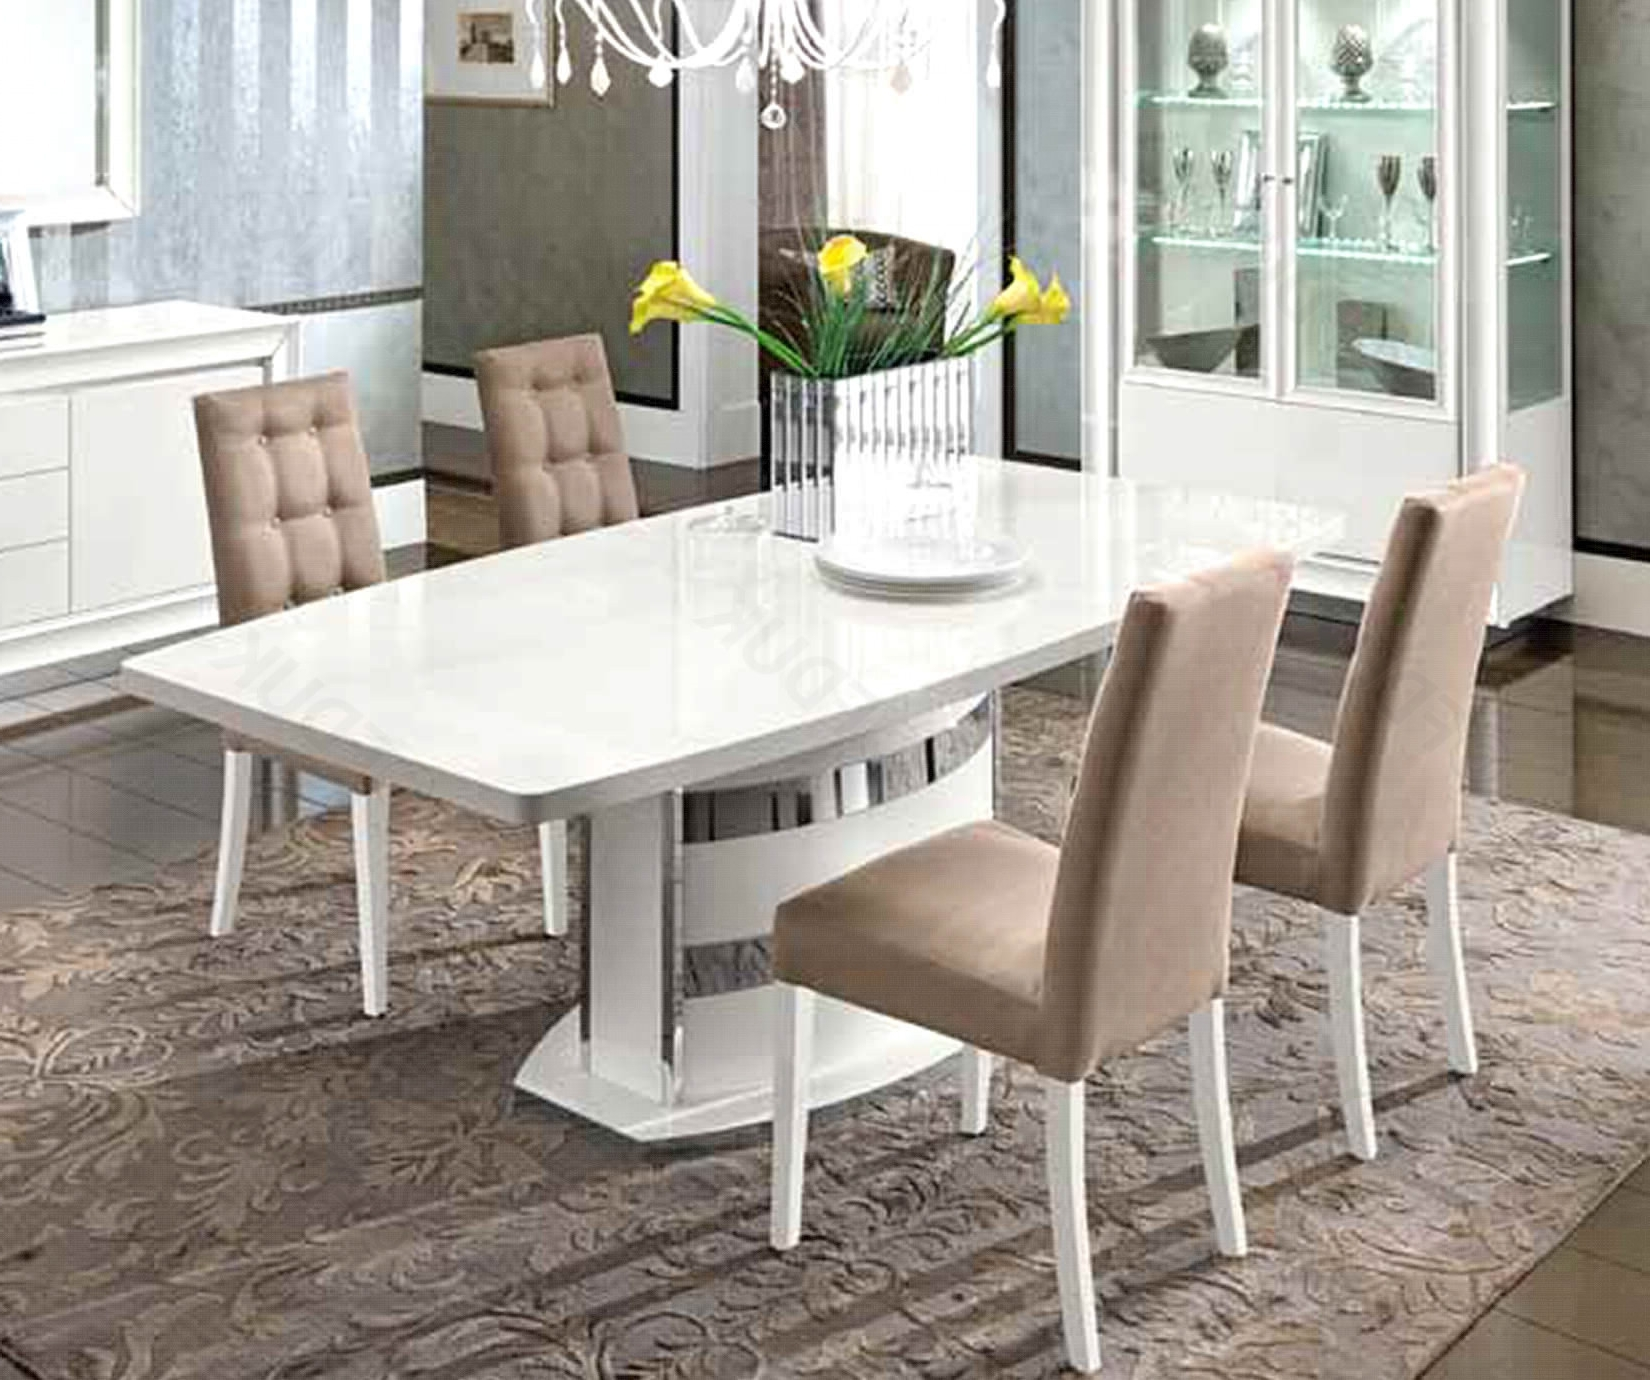 Dama Bianca White High Gloss Extending Pertaining To Best And Newest High Gloss White Extending Dining Tables (View 7 of 25)